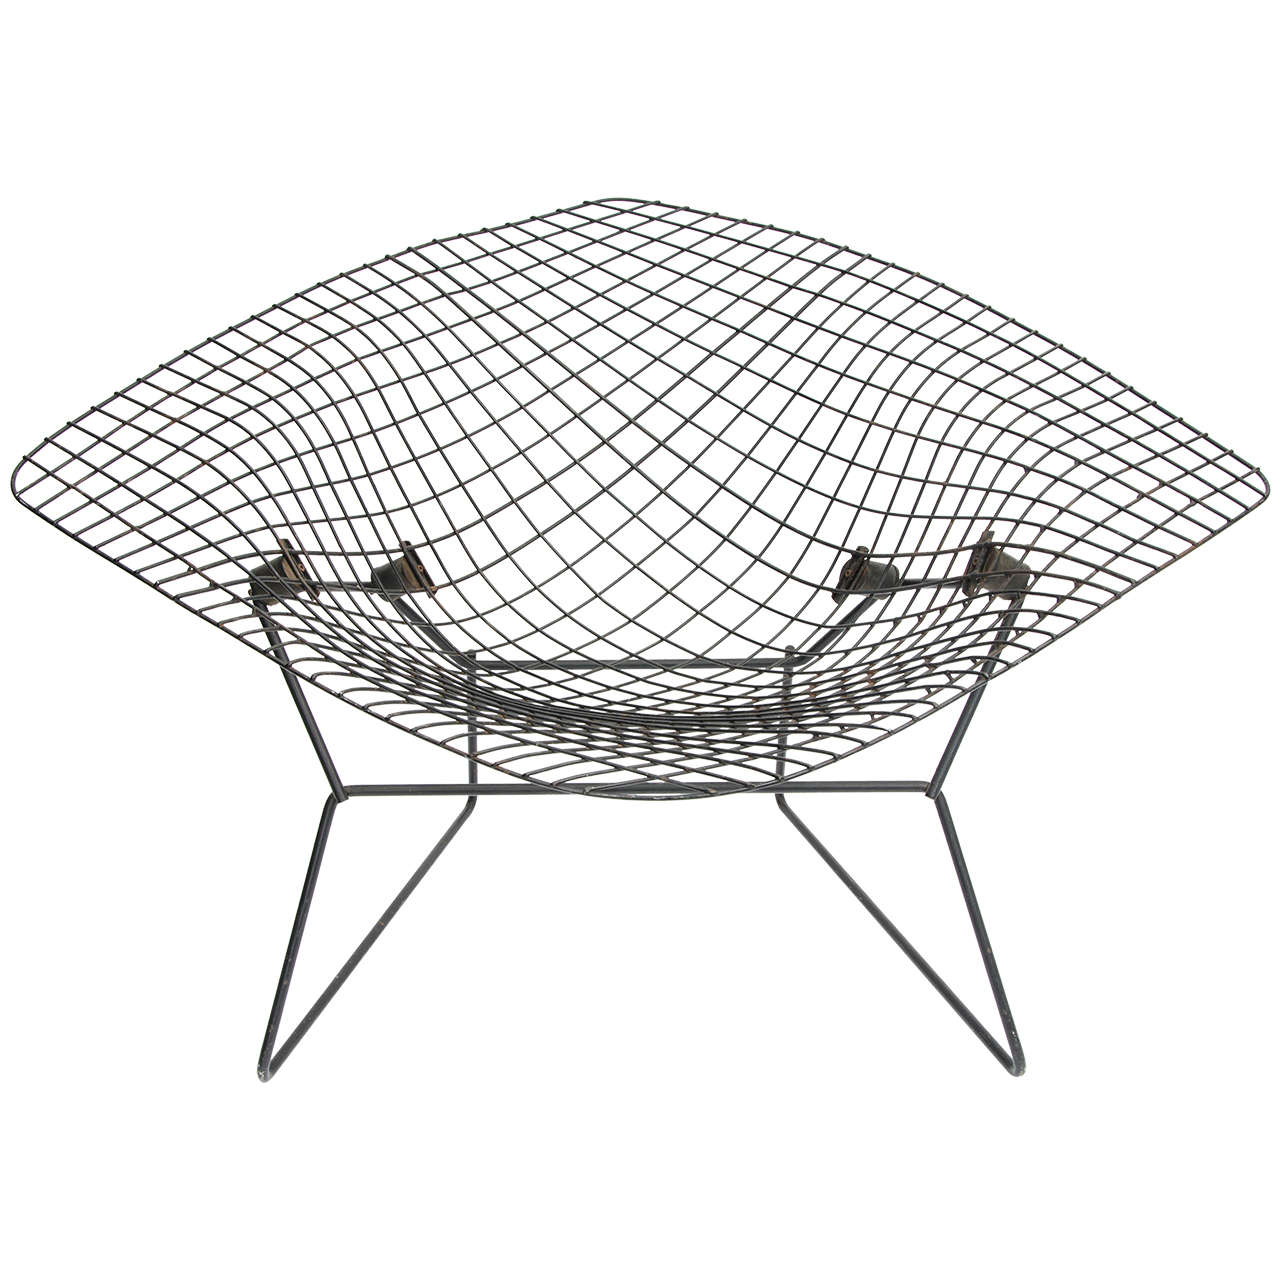 Bertoia diamond chair dimensions - Early Wide Diamond Chair By Harry Bertoia 1950s 1